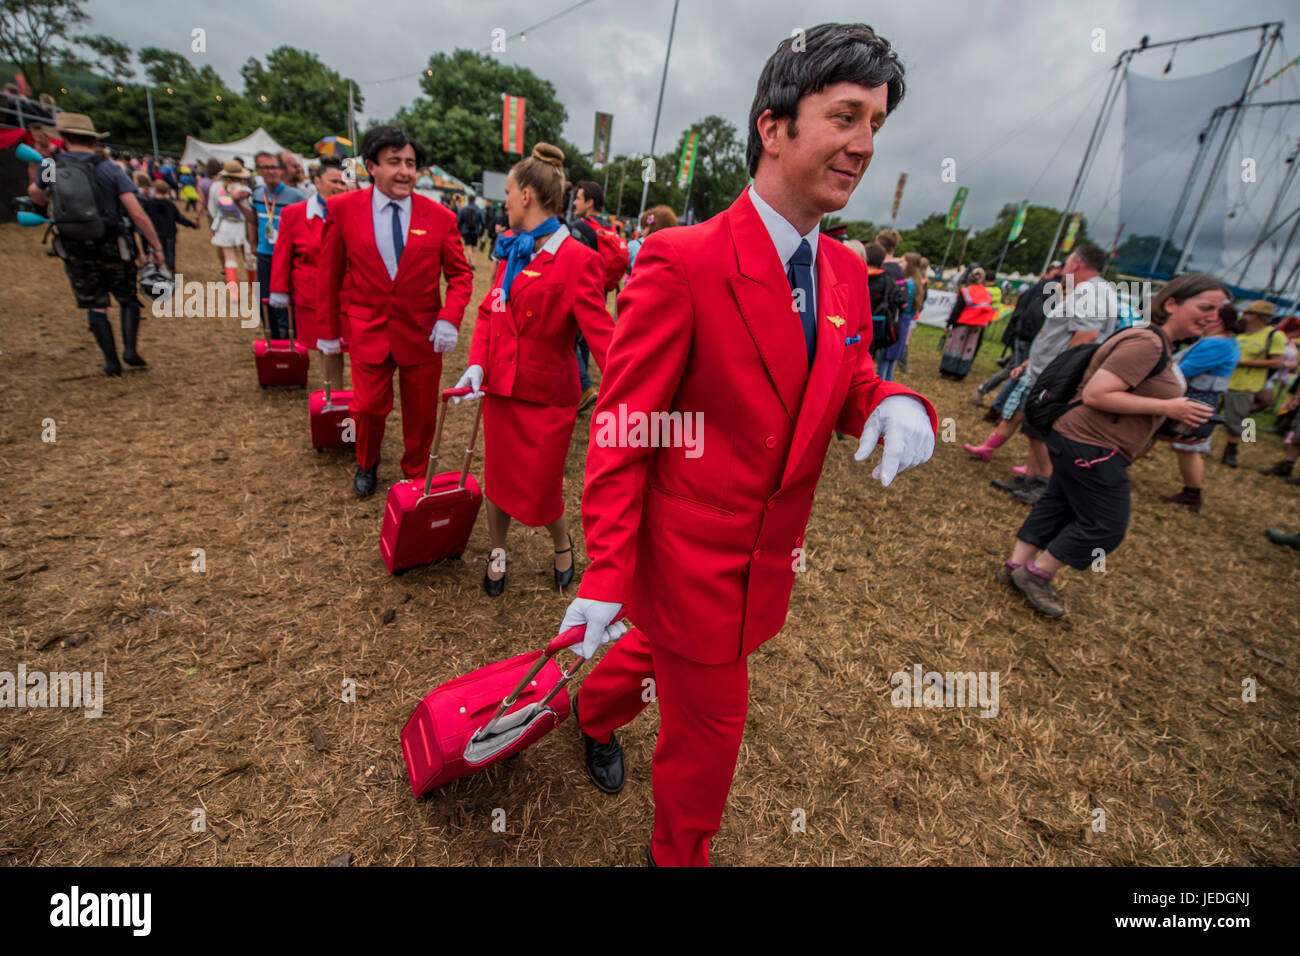 Glastonbury, Somerset, UK. 24th June, 2017. Air steward masseurs one of the Many weird activities in teh circus Stock Photo